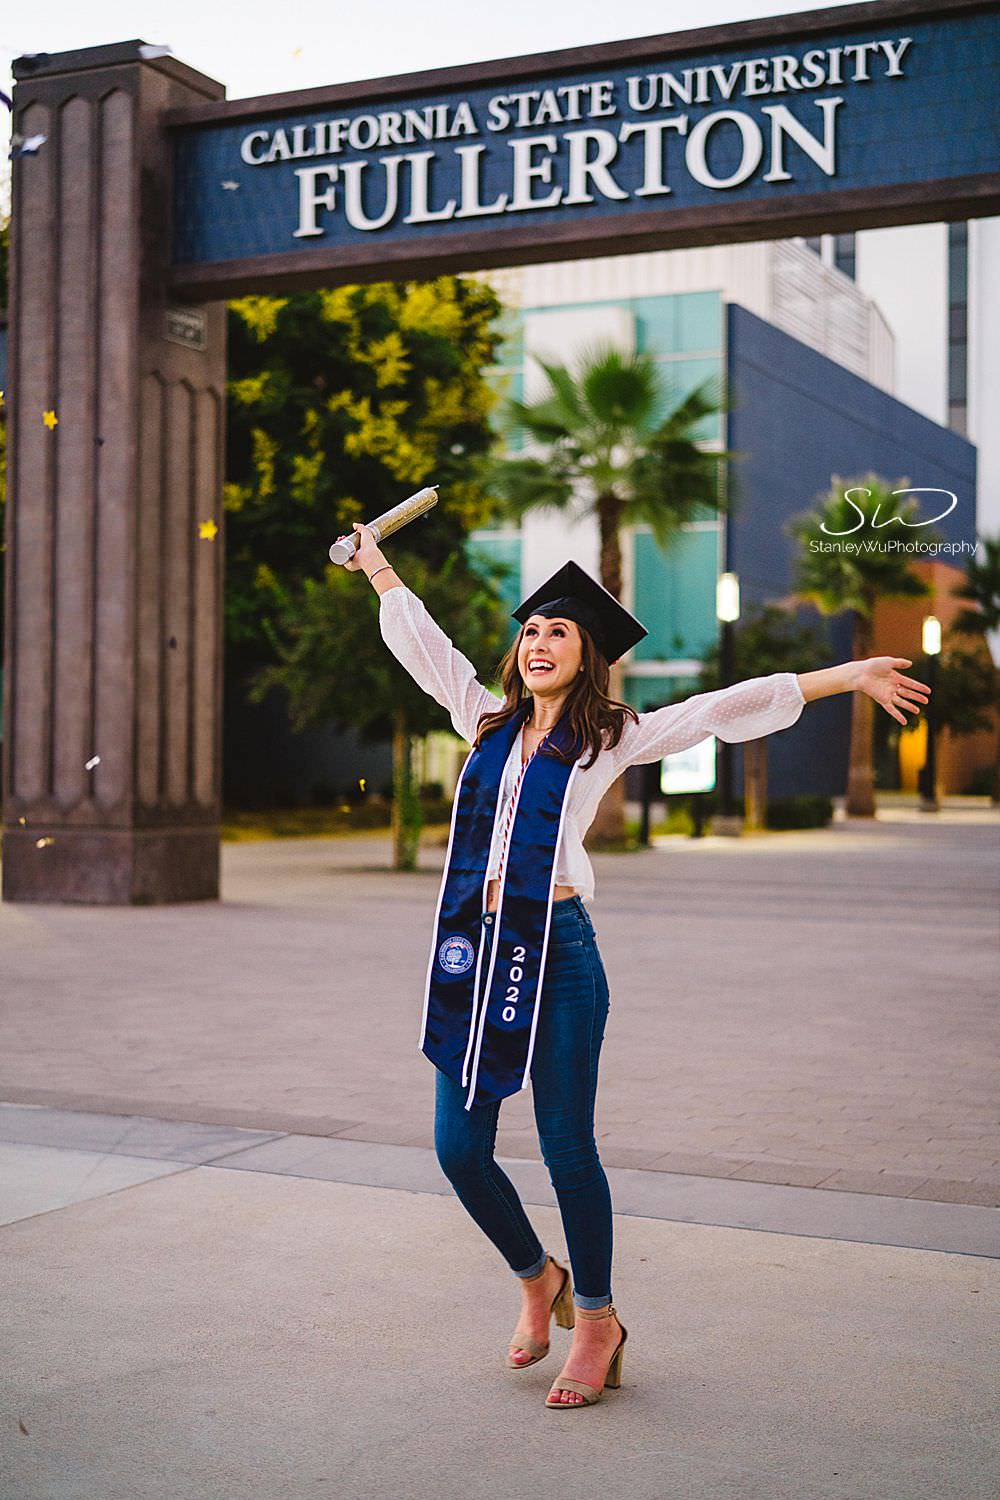 csu fullerton graduation photos playing with confetti in front of sign